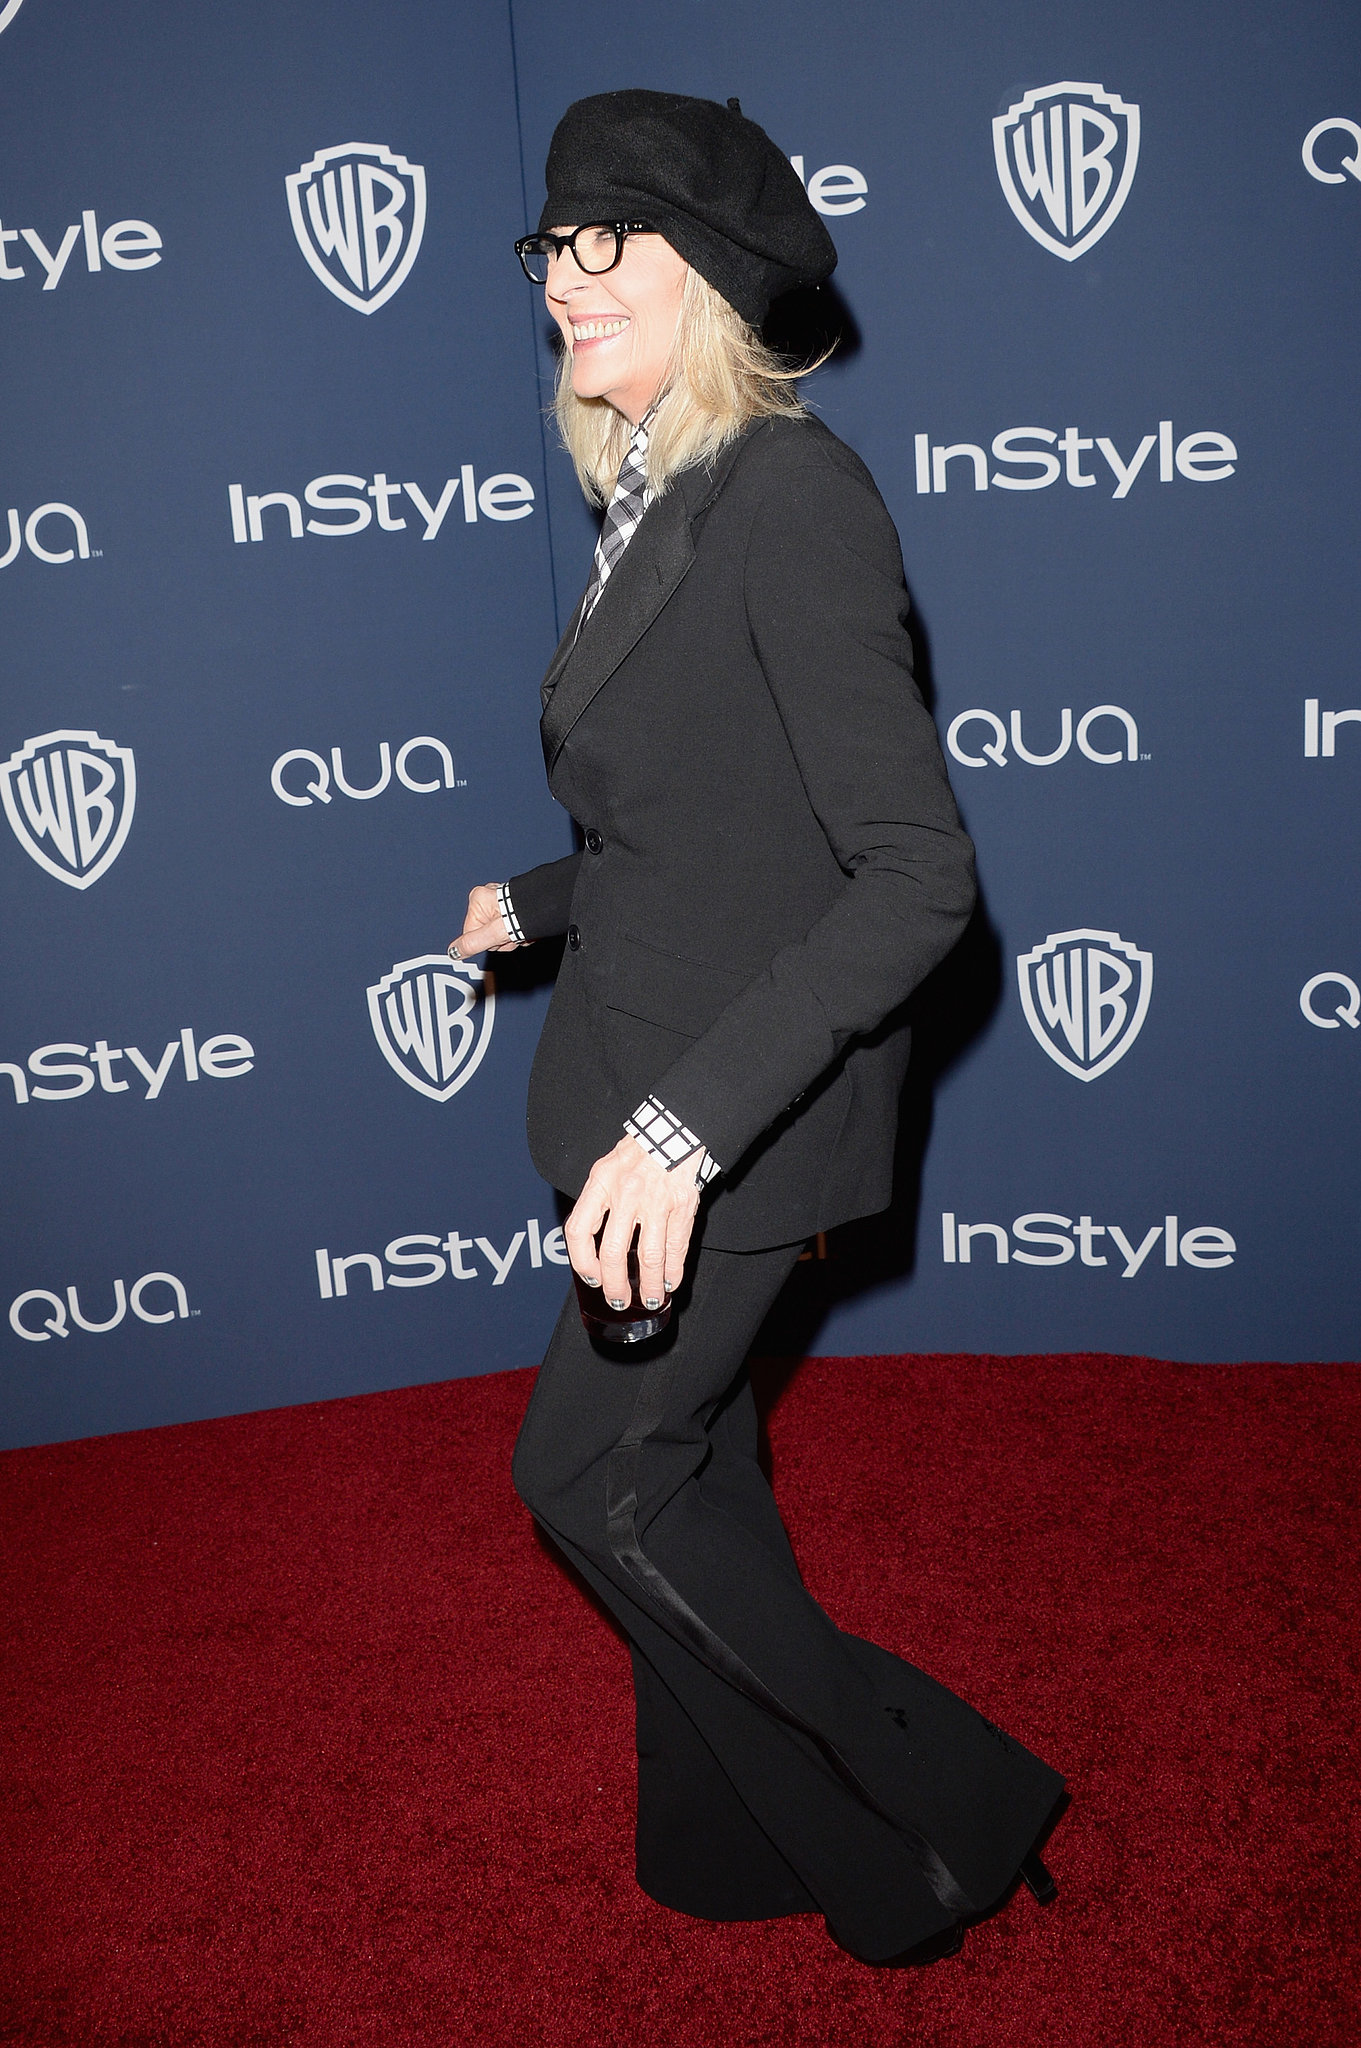 Diane Keaton made her way inside the afterp